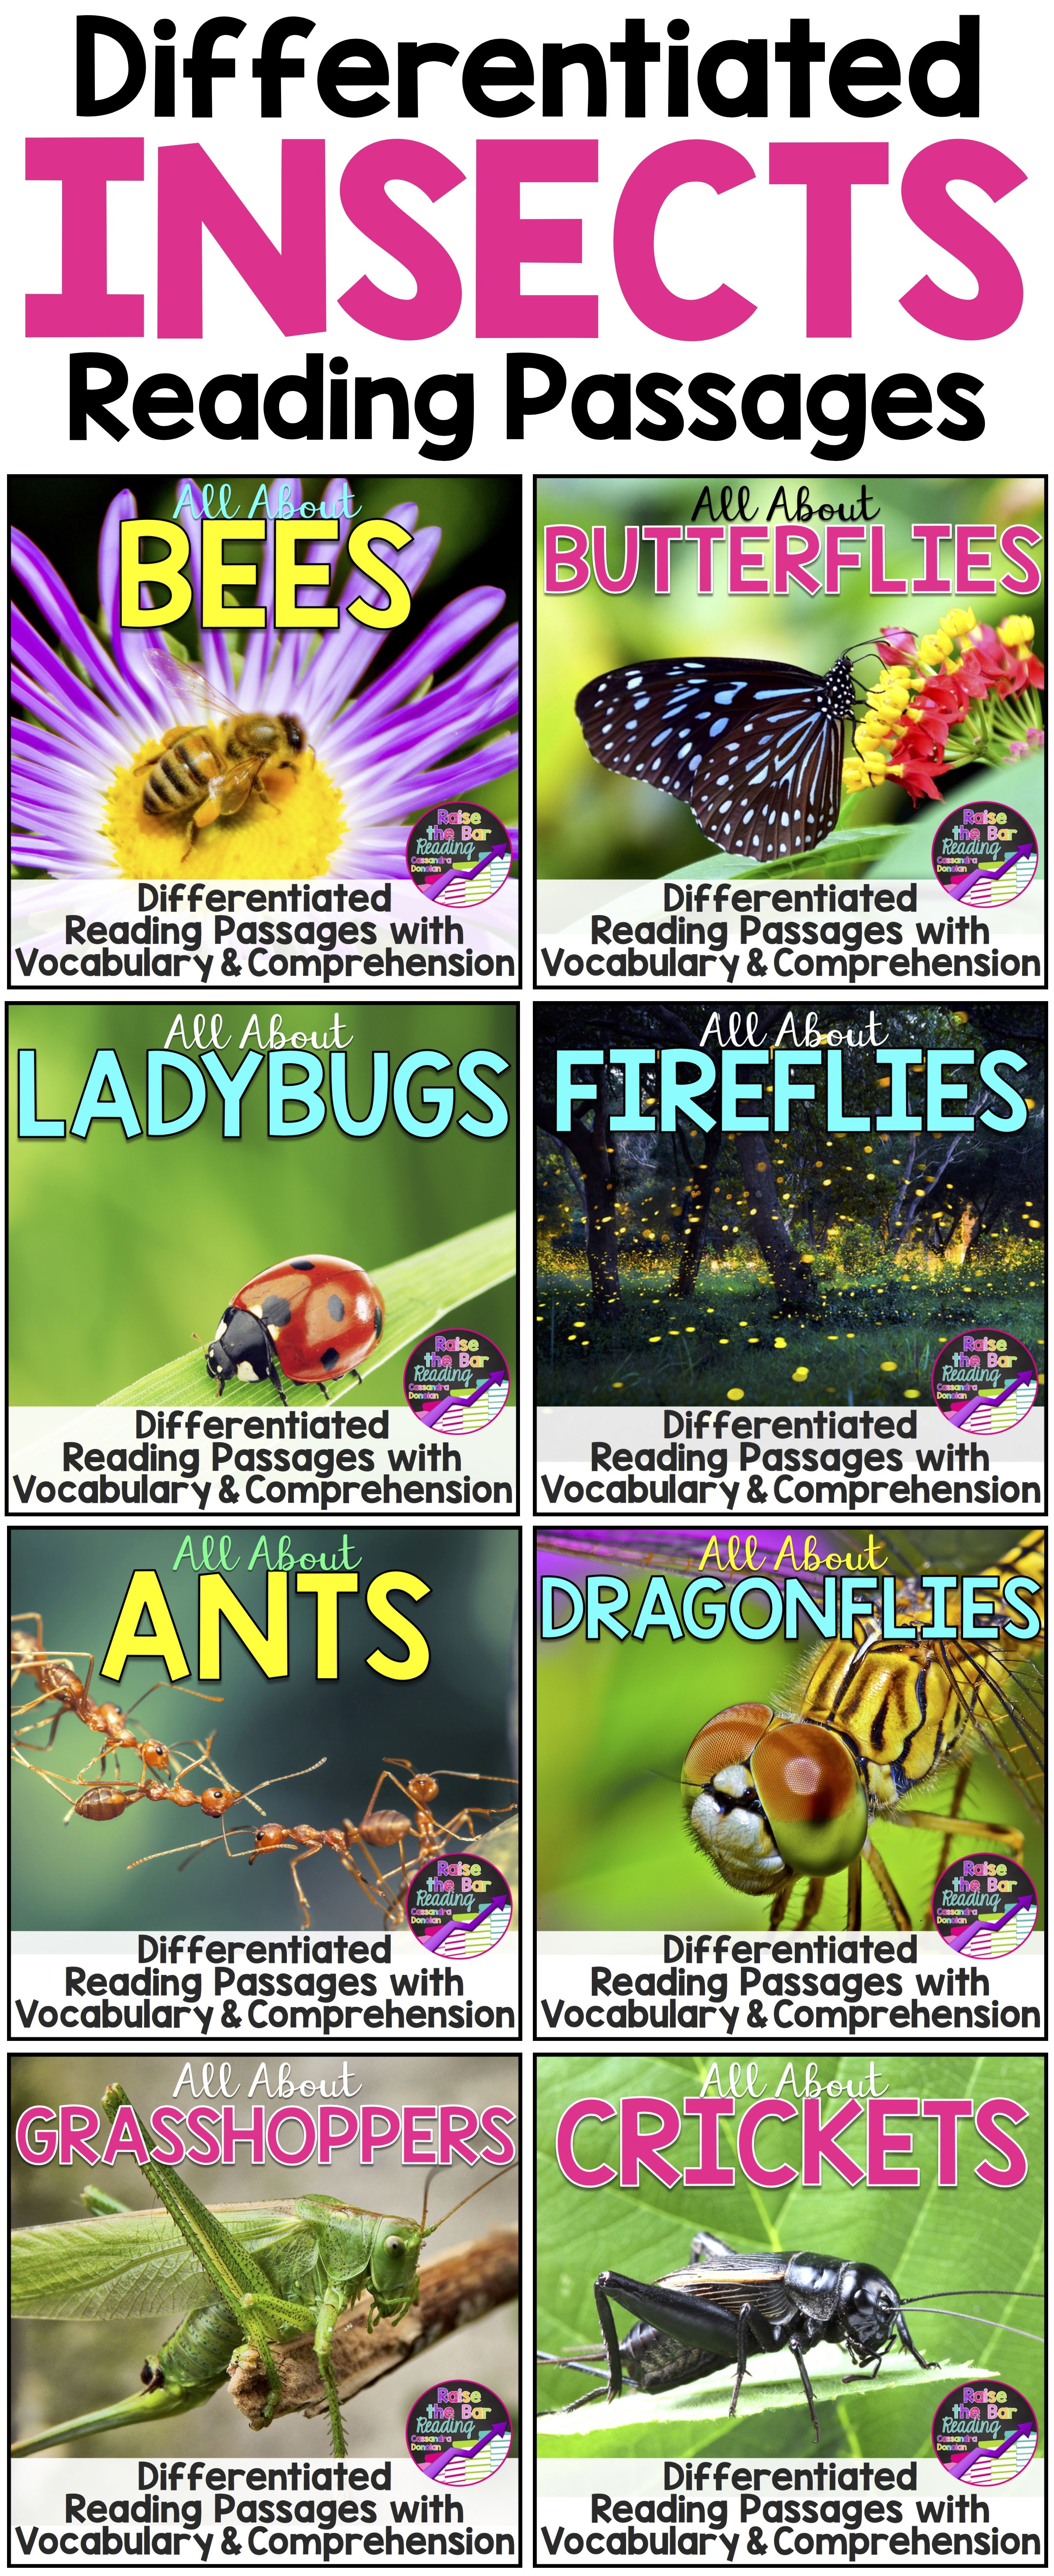 Differentiated Insects Reading Passages Comprehension